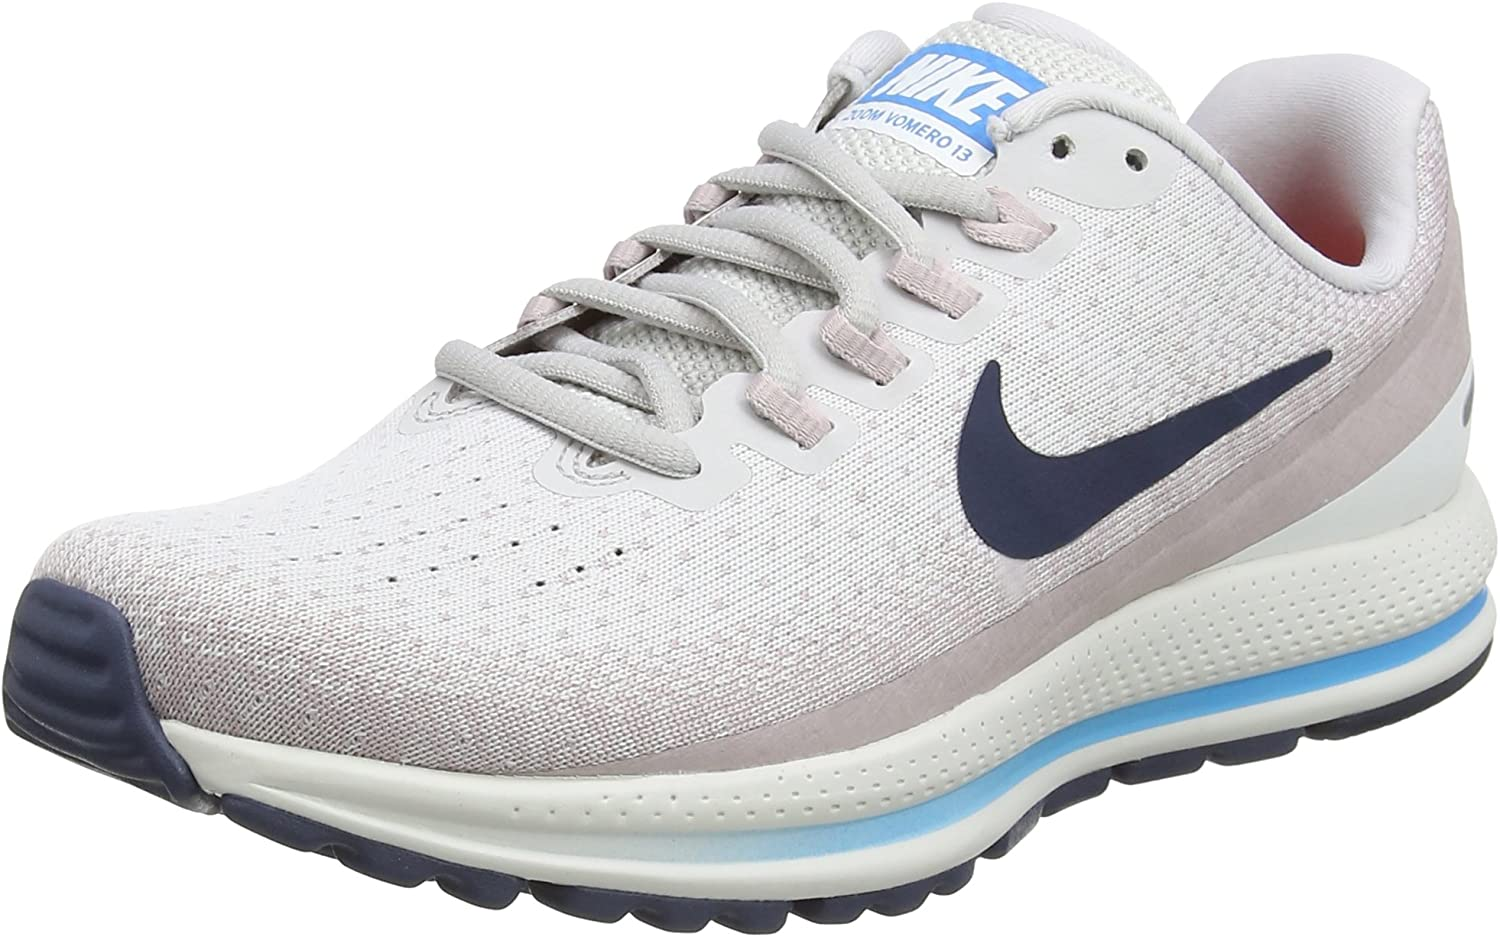 Nike Wmns Air Zoom Vomero 13, Zapatillas de Running para Mujer, Gris (Vast Grey/Thunder Blue-Particle Rose 006), 40.5 EU: Amazon.es: Ropa y accesorios